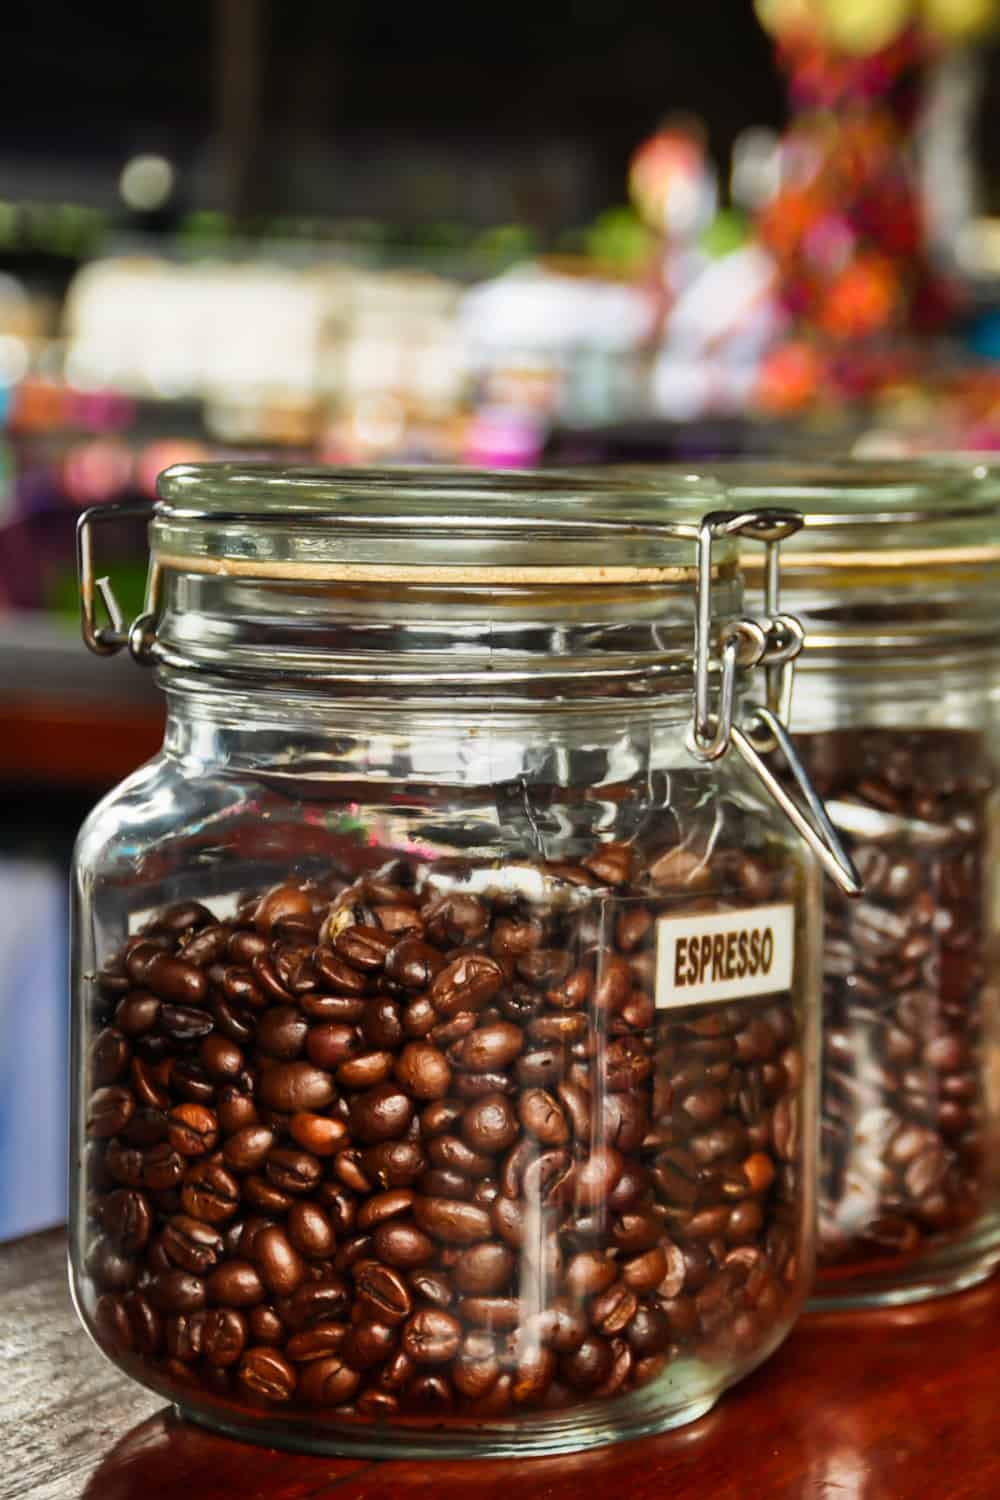 11 Tips to Store Coffee Beans